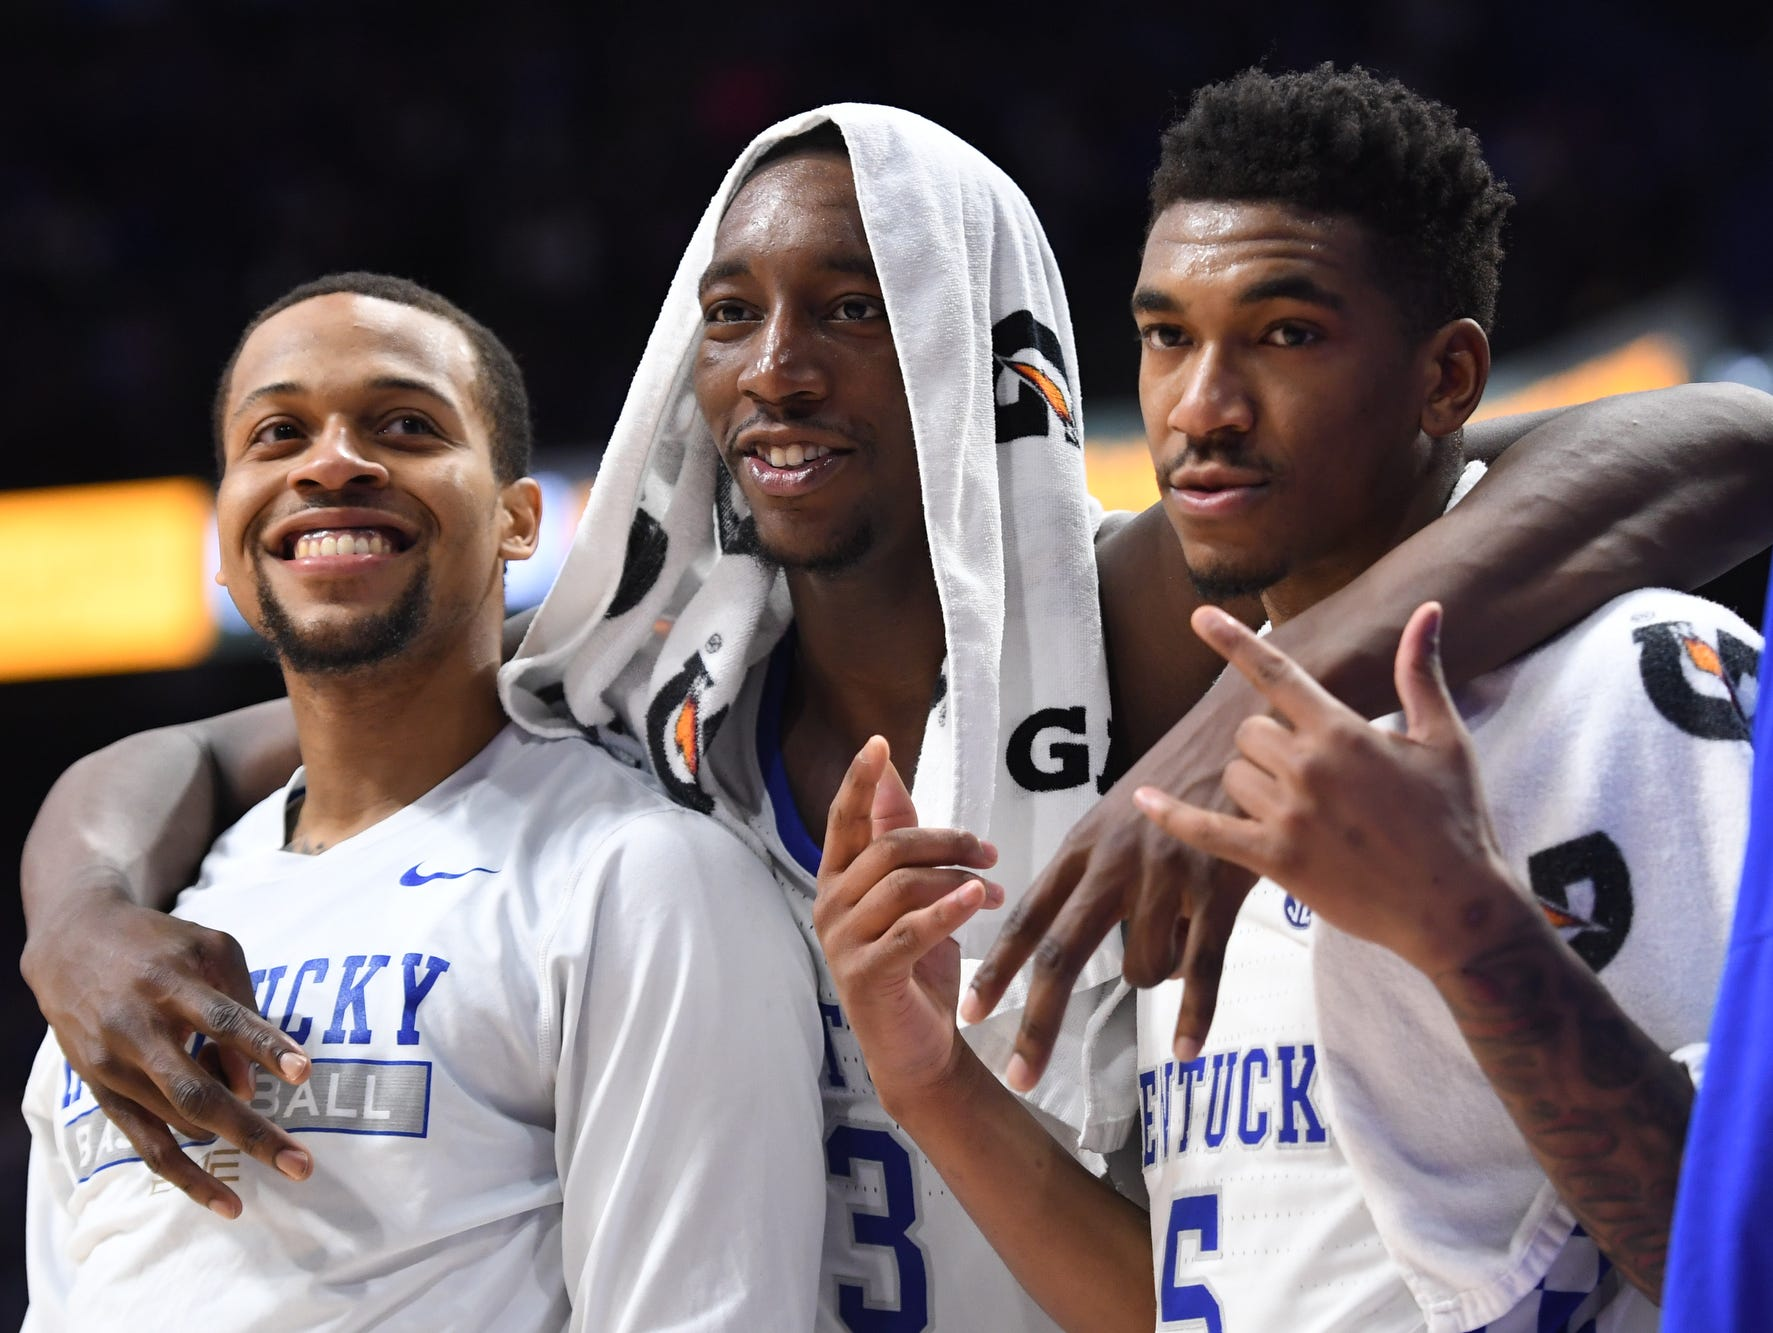 UK's Isaiah Briscoe, Bam Adebayo, and Malik Monk pose during the University of Kentucky basketball game against University of Tennessee at Rupp Arena in Lexington, KY on Tuesday, February 14, 2017.